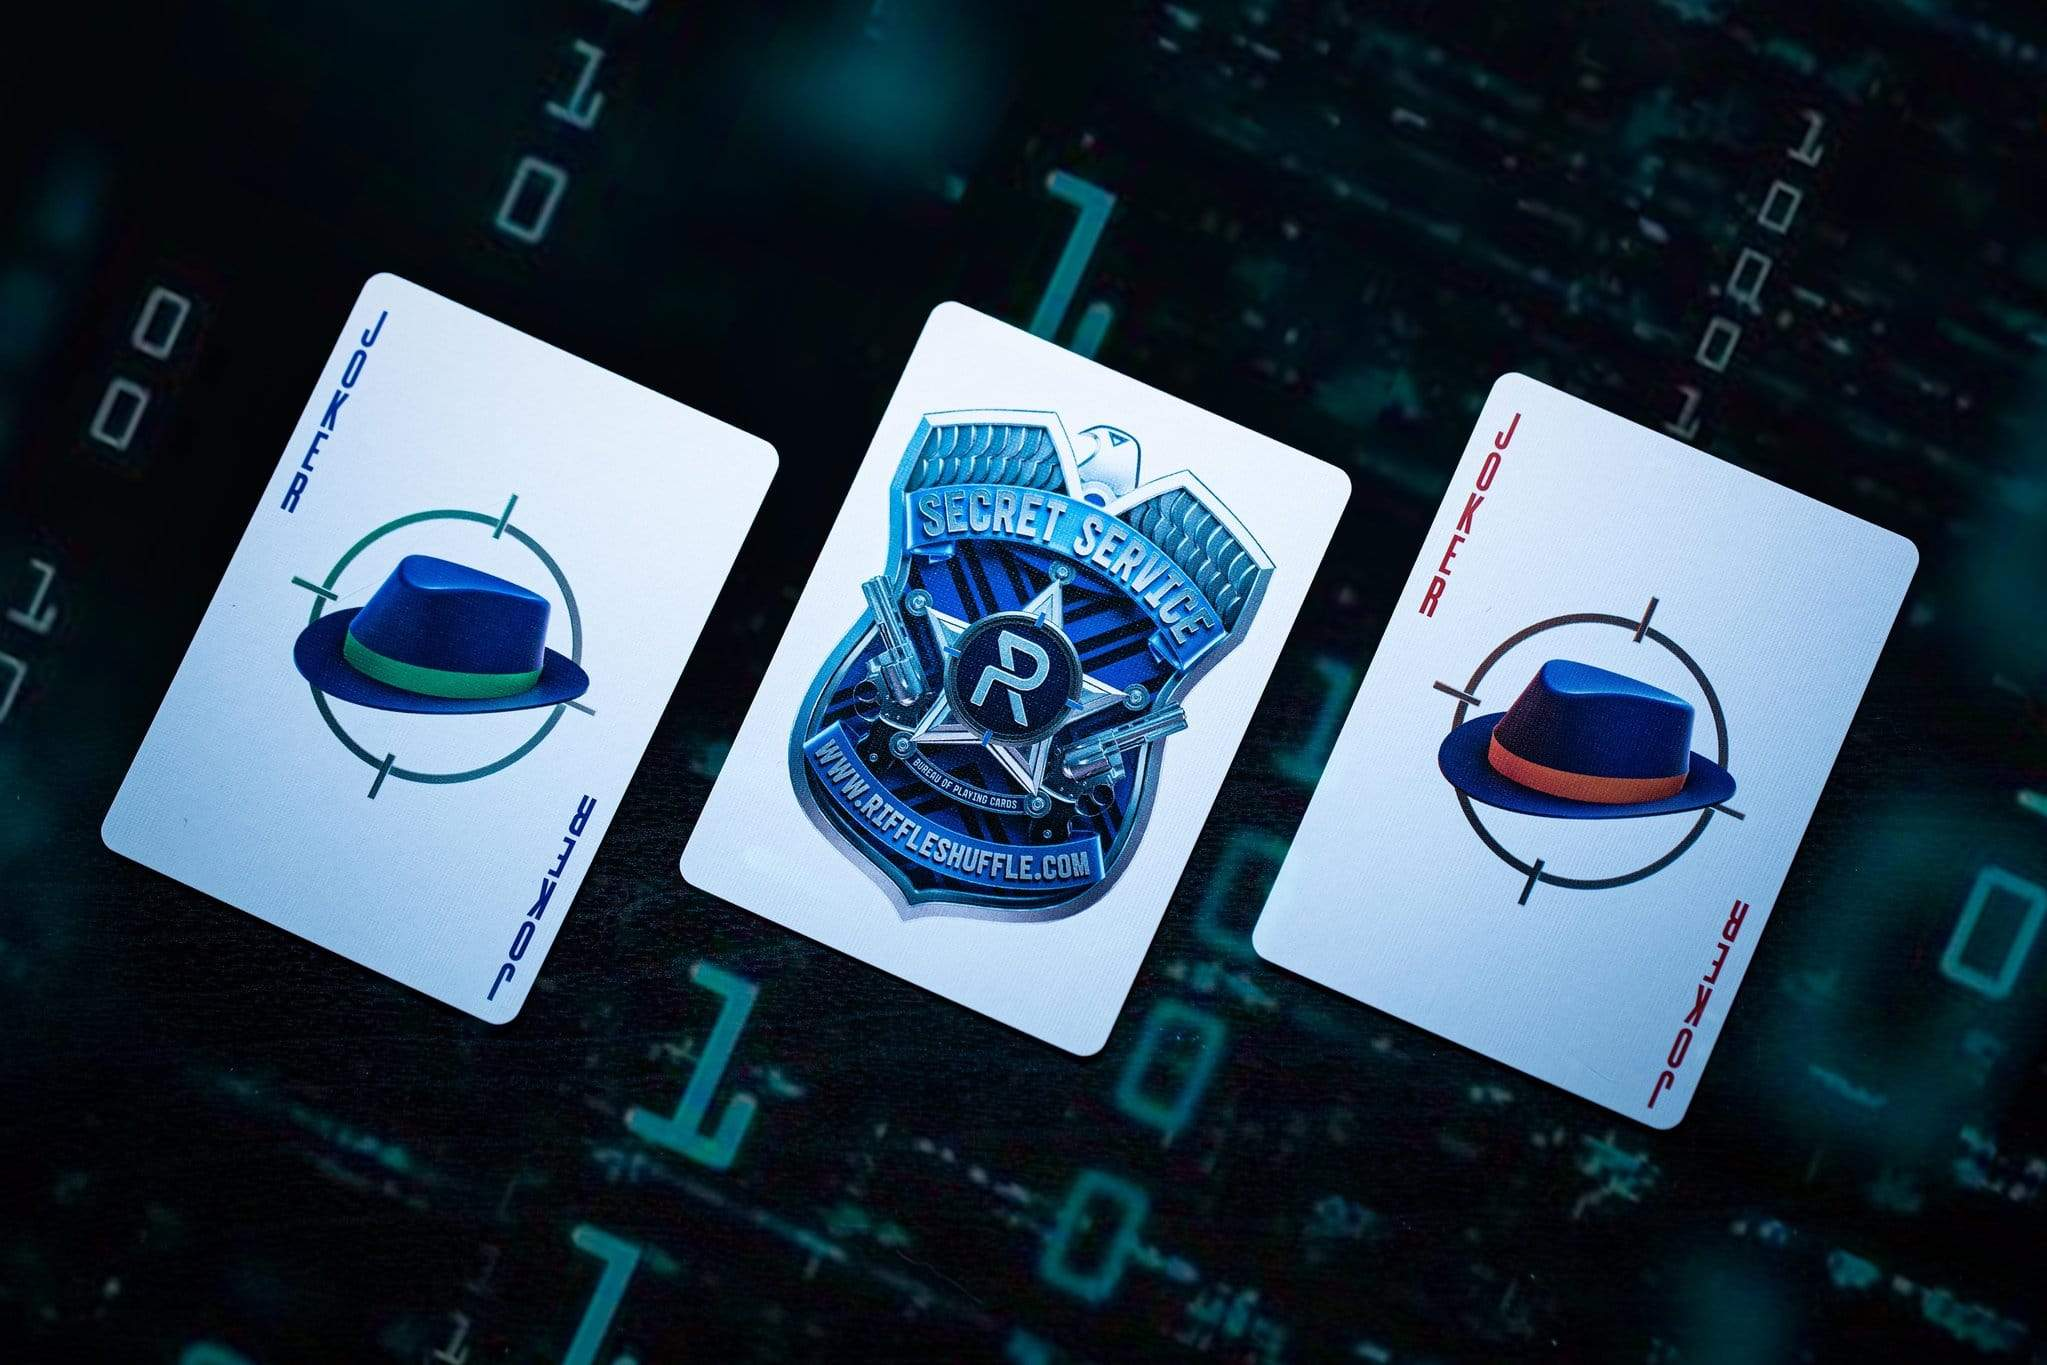 Secret-Service-Playing-Cards-by-Riffle-Shuffle-Alt9